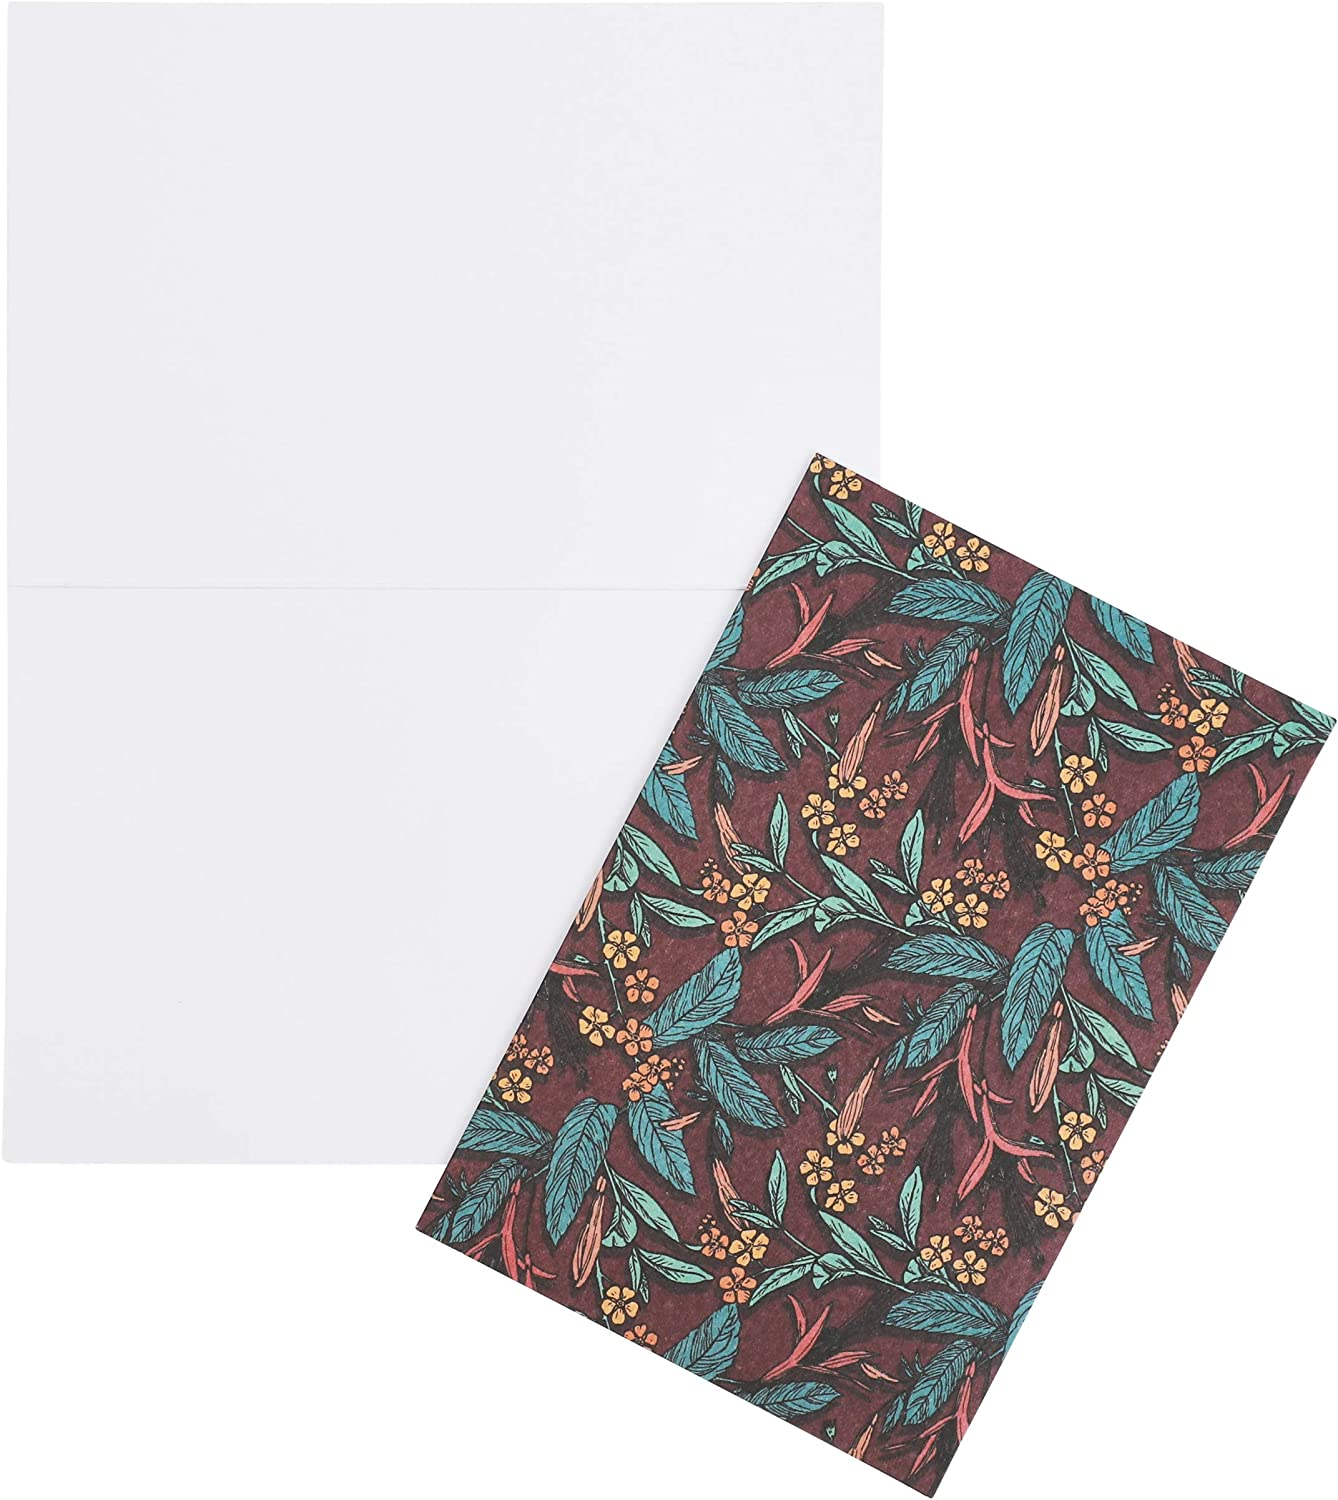 Blank Floral Greeting Cards 6 x 4 in, 48 Pack